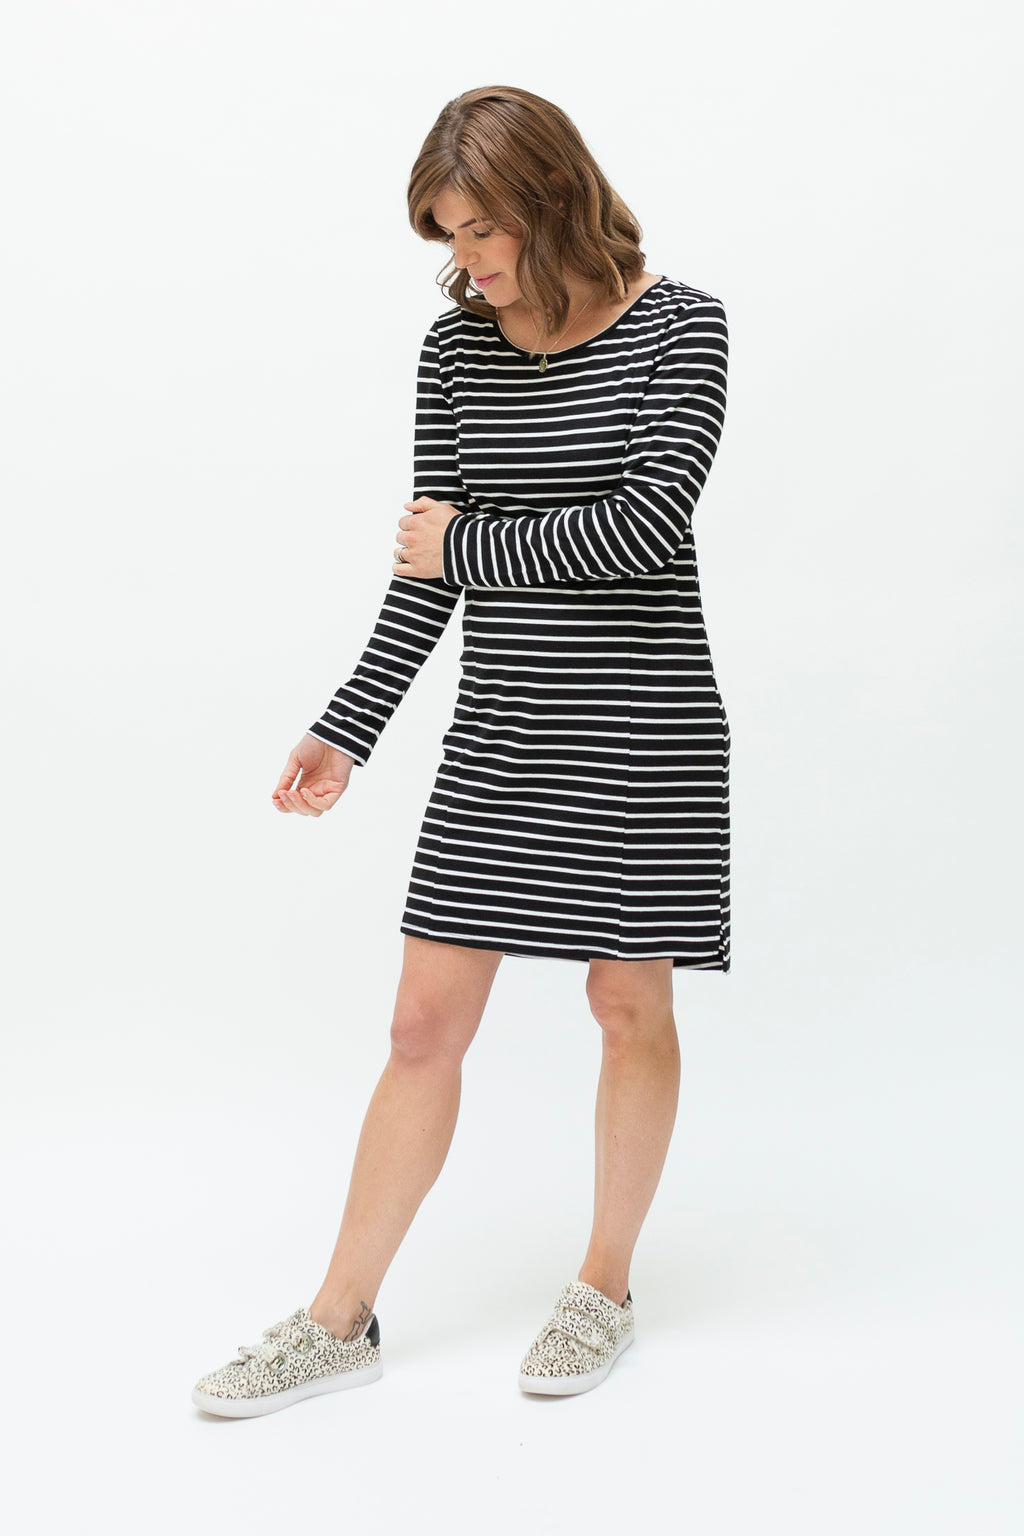 B&W stripe dress-breastfeeding dress NZ-profile